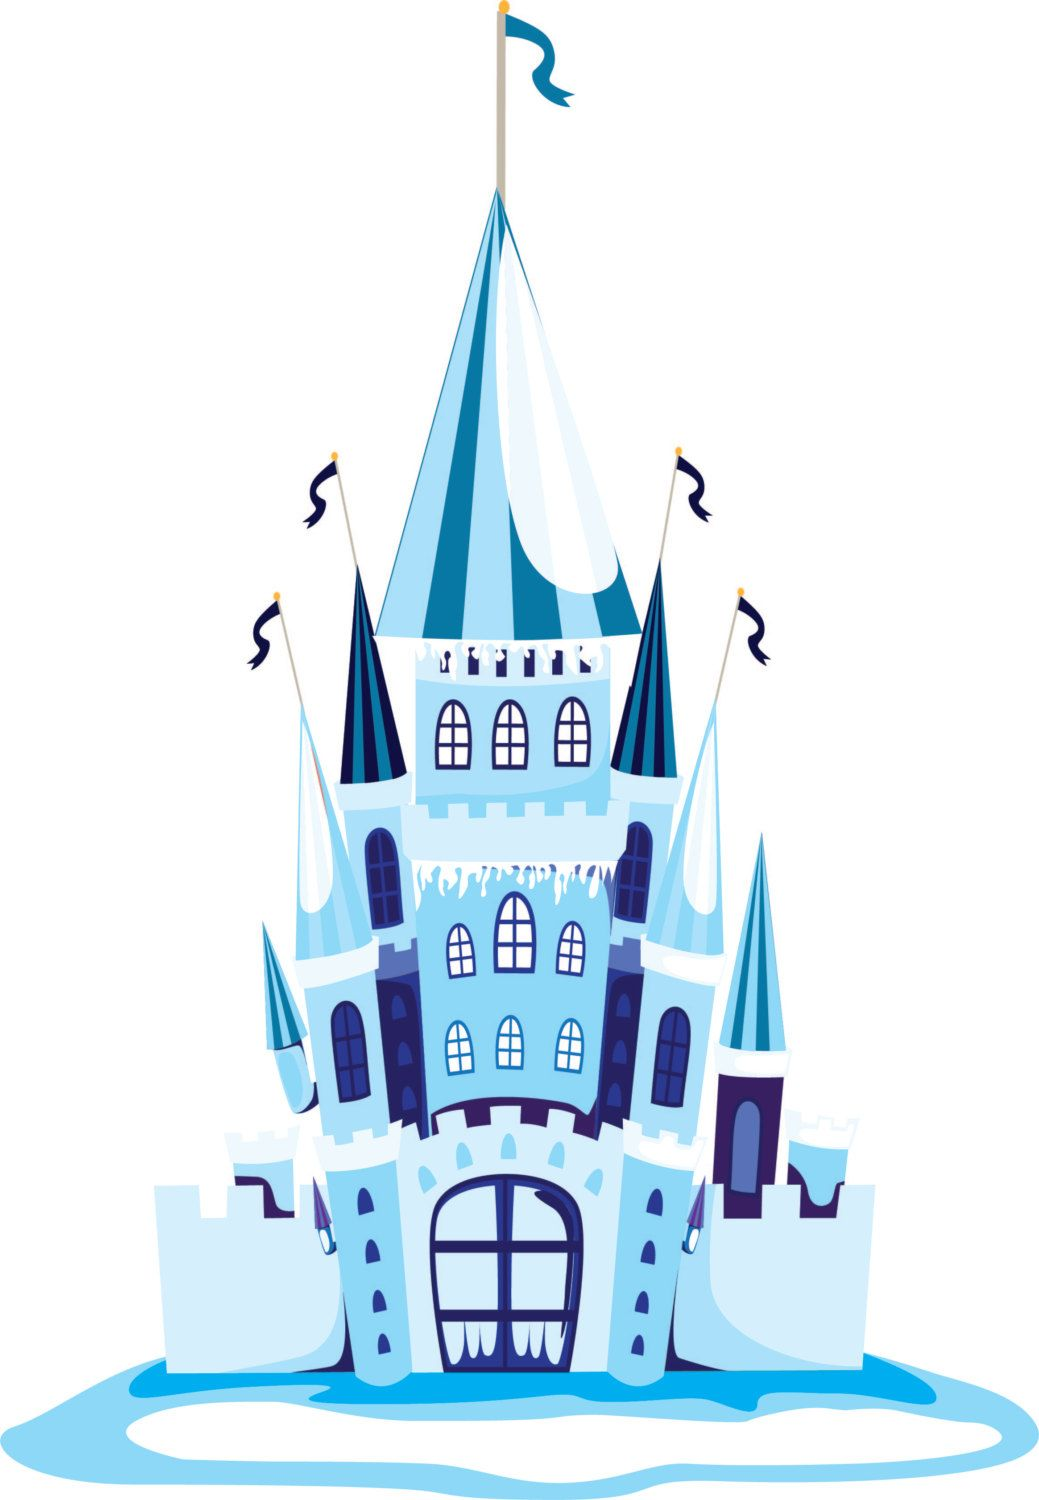 wall stickers rymden wall stickers rymden blue ice castle wall decal vinyl wall sticker removable wall decal by